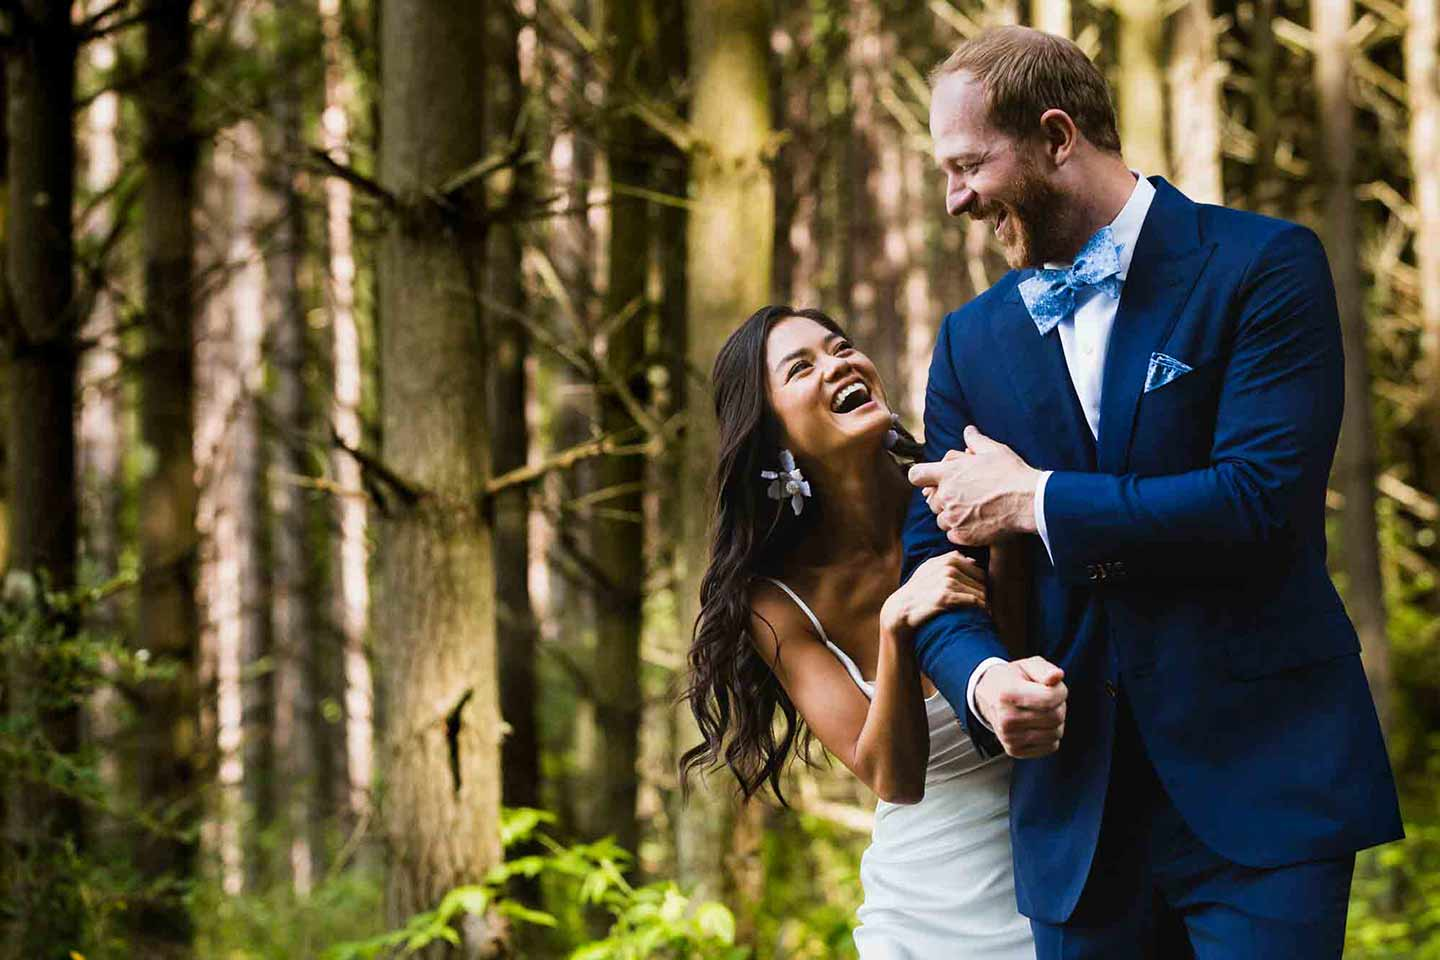 bride and groom walk together laughing in the woods